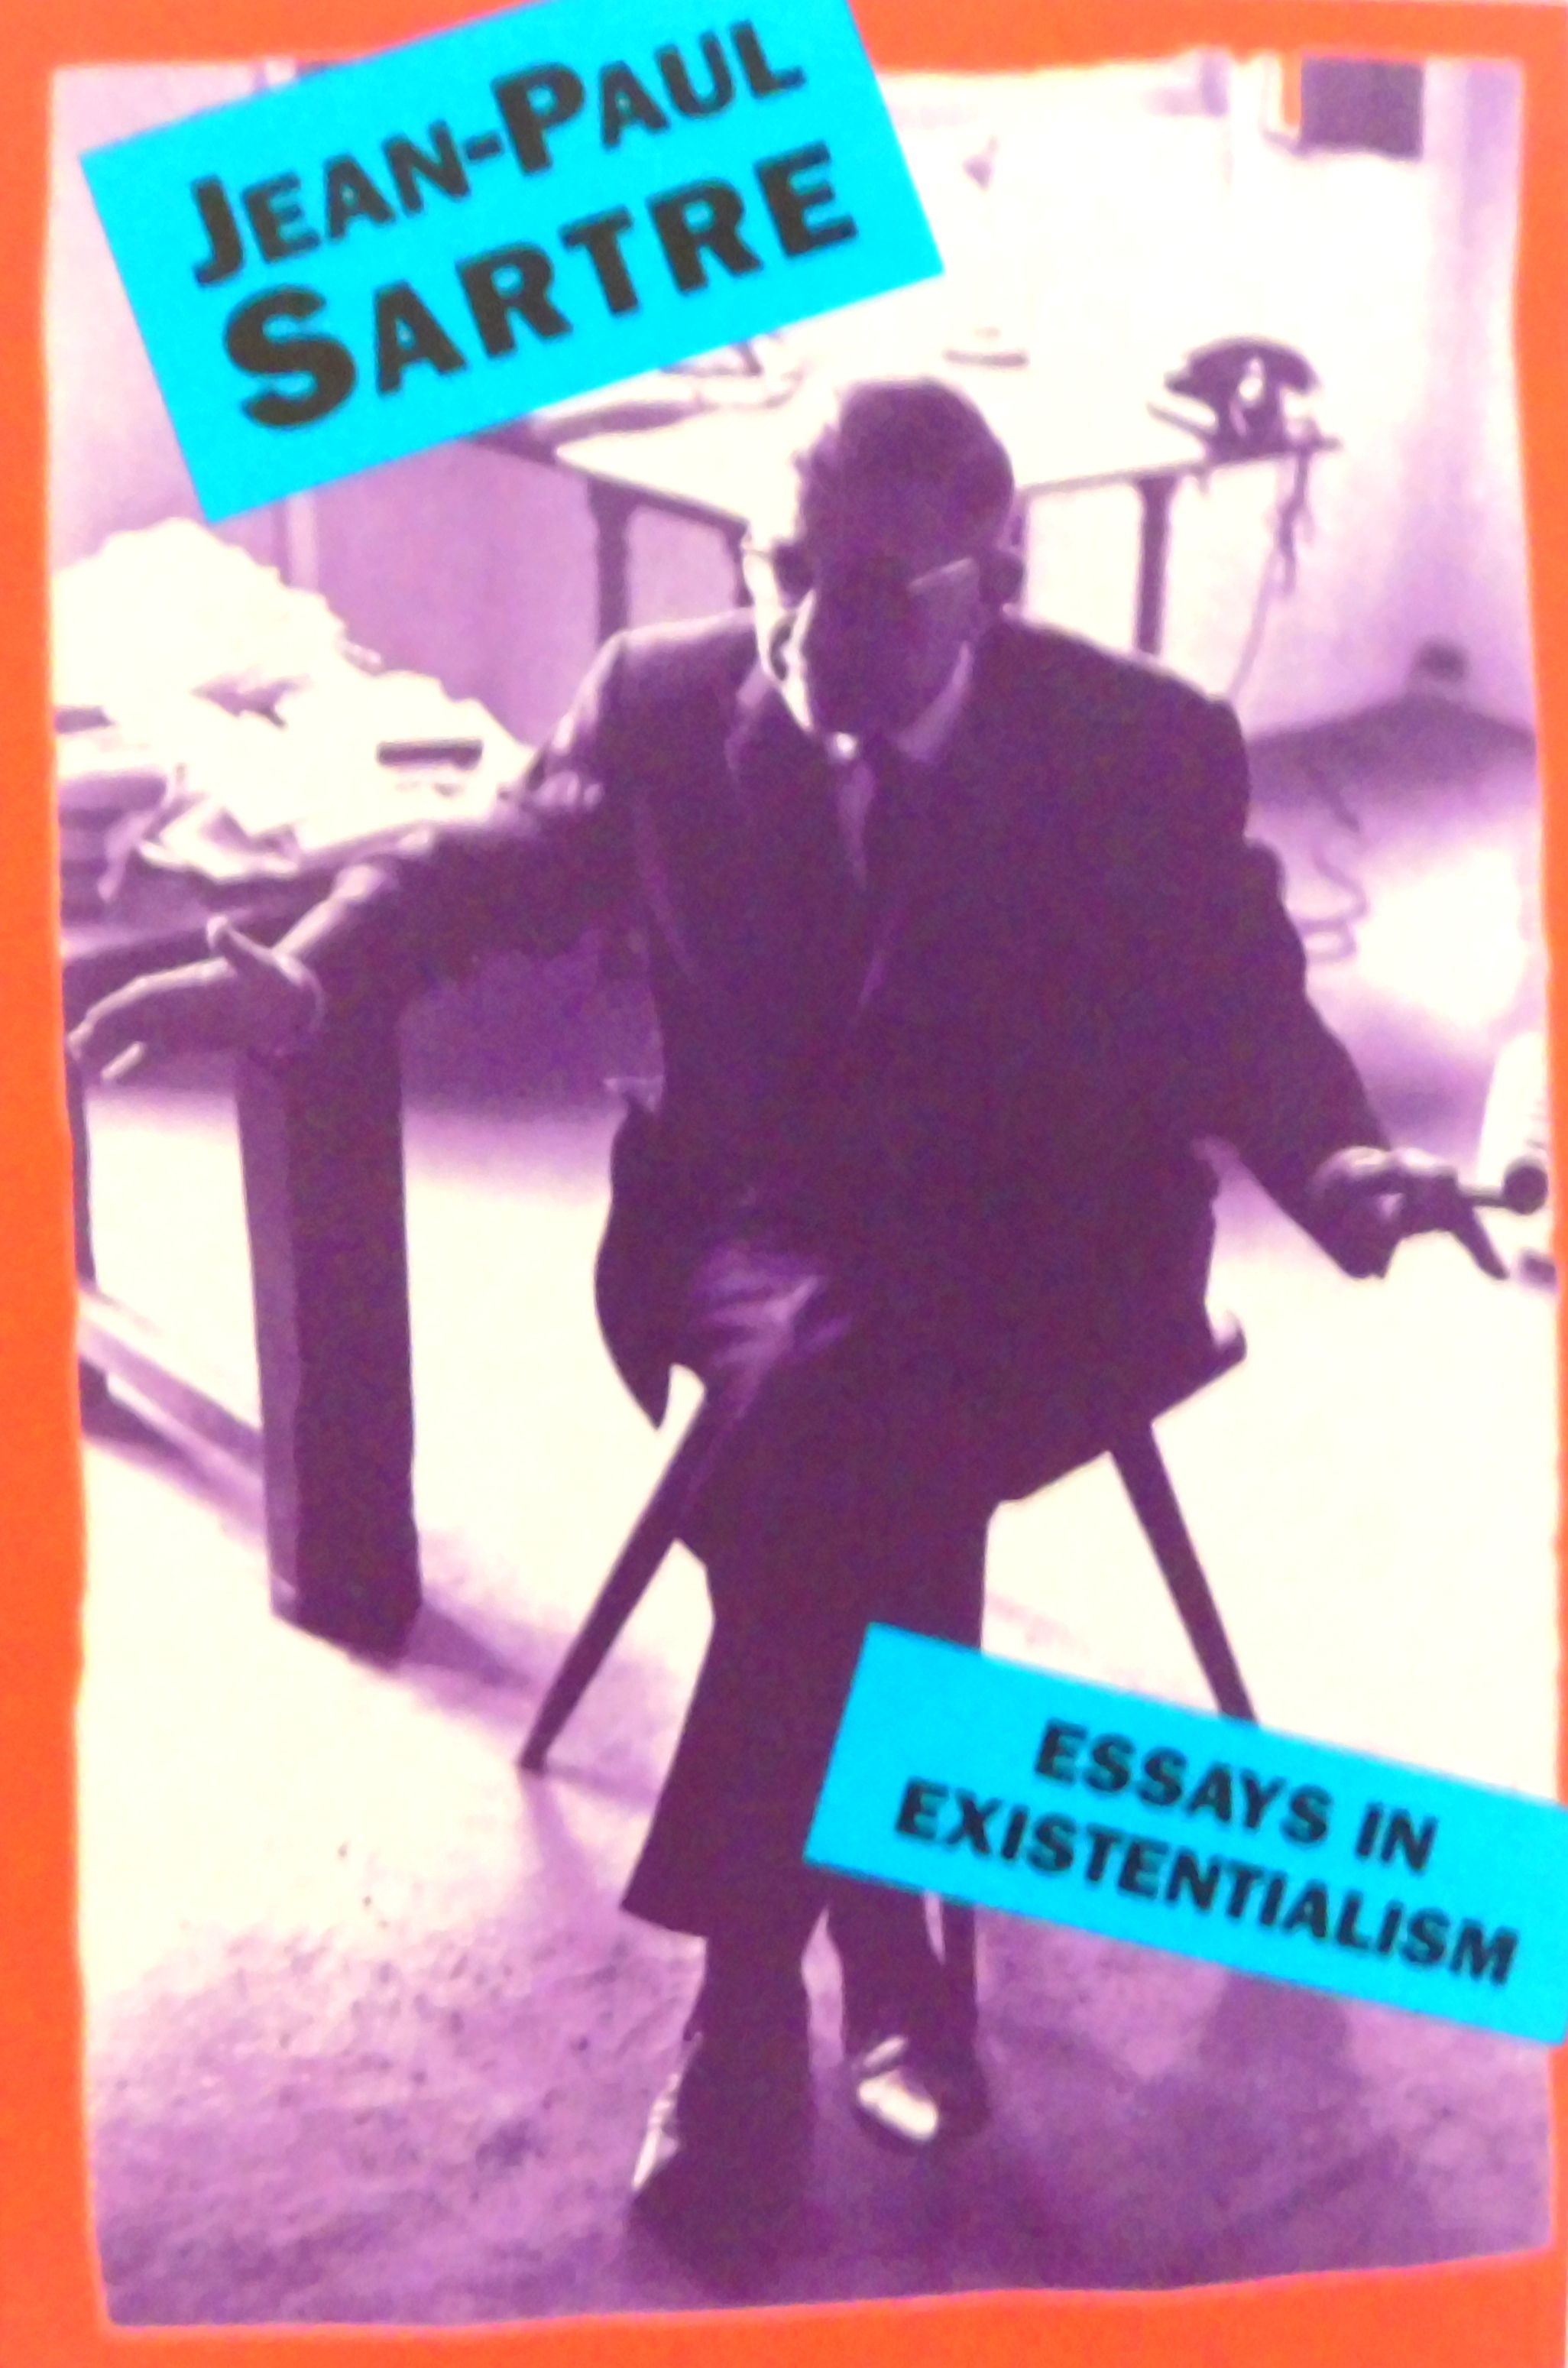 007 X Essay Example Essays In Outstanding Existentialism Sartre Pdf Jean Paul Full